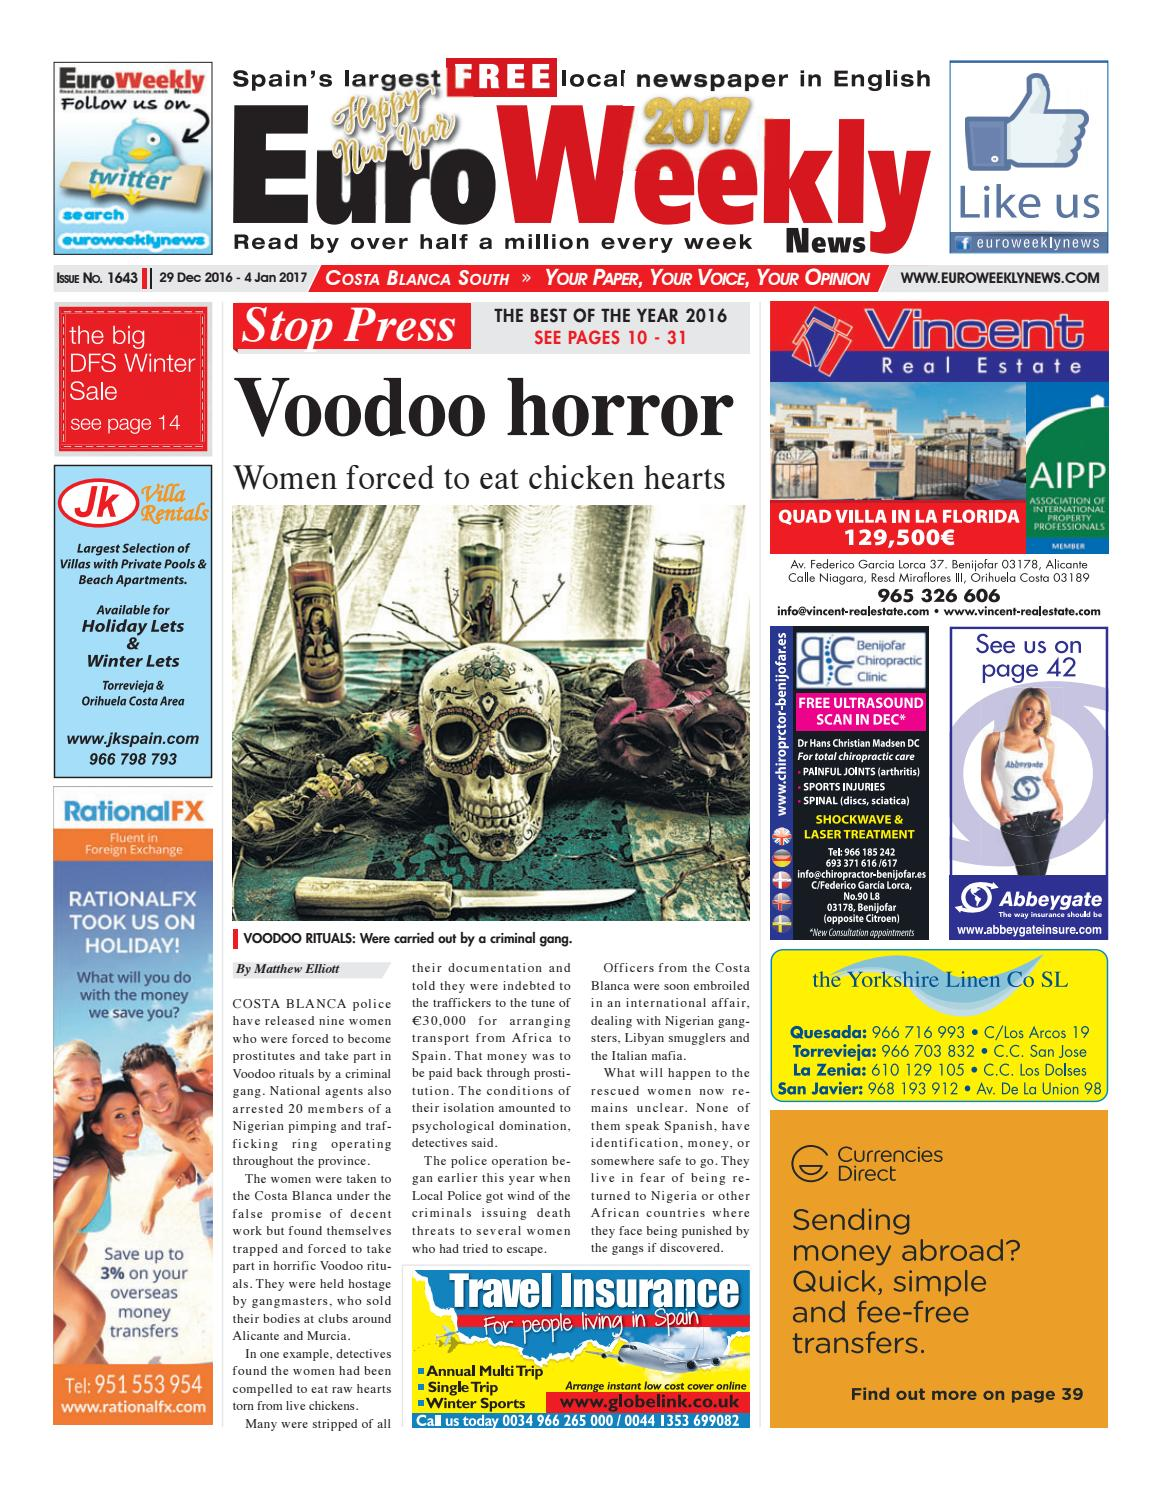 Euro Weekly News Costa Blanca South 29 December 2016 4 January Lovotics A New Robot Race That Can Love 2017 Issue 1643 By Media Sa Issuu